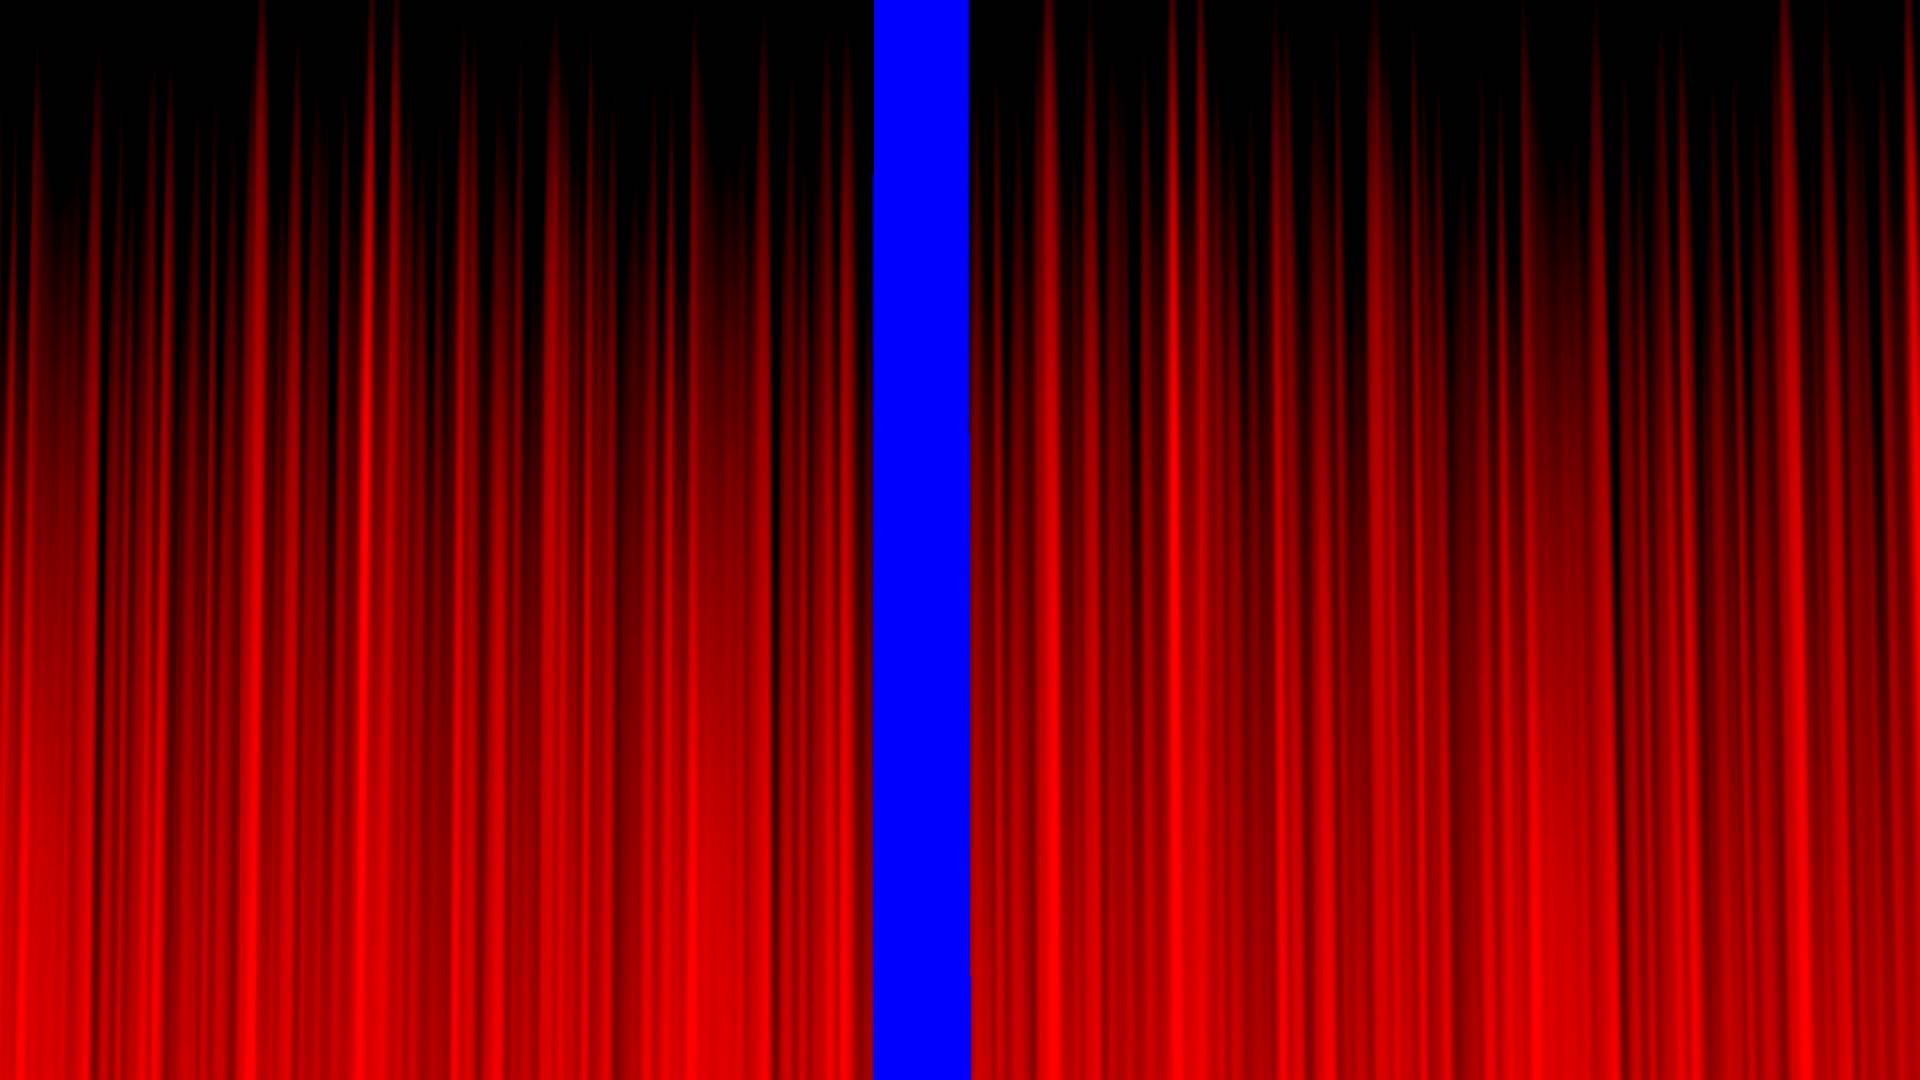 Curtain clipart david lynch Stage Art RED Art